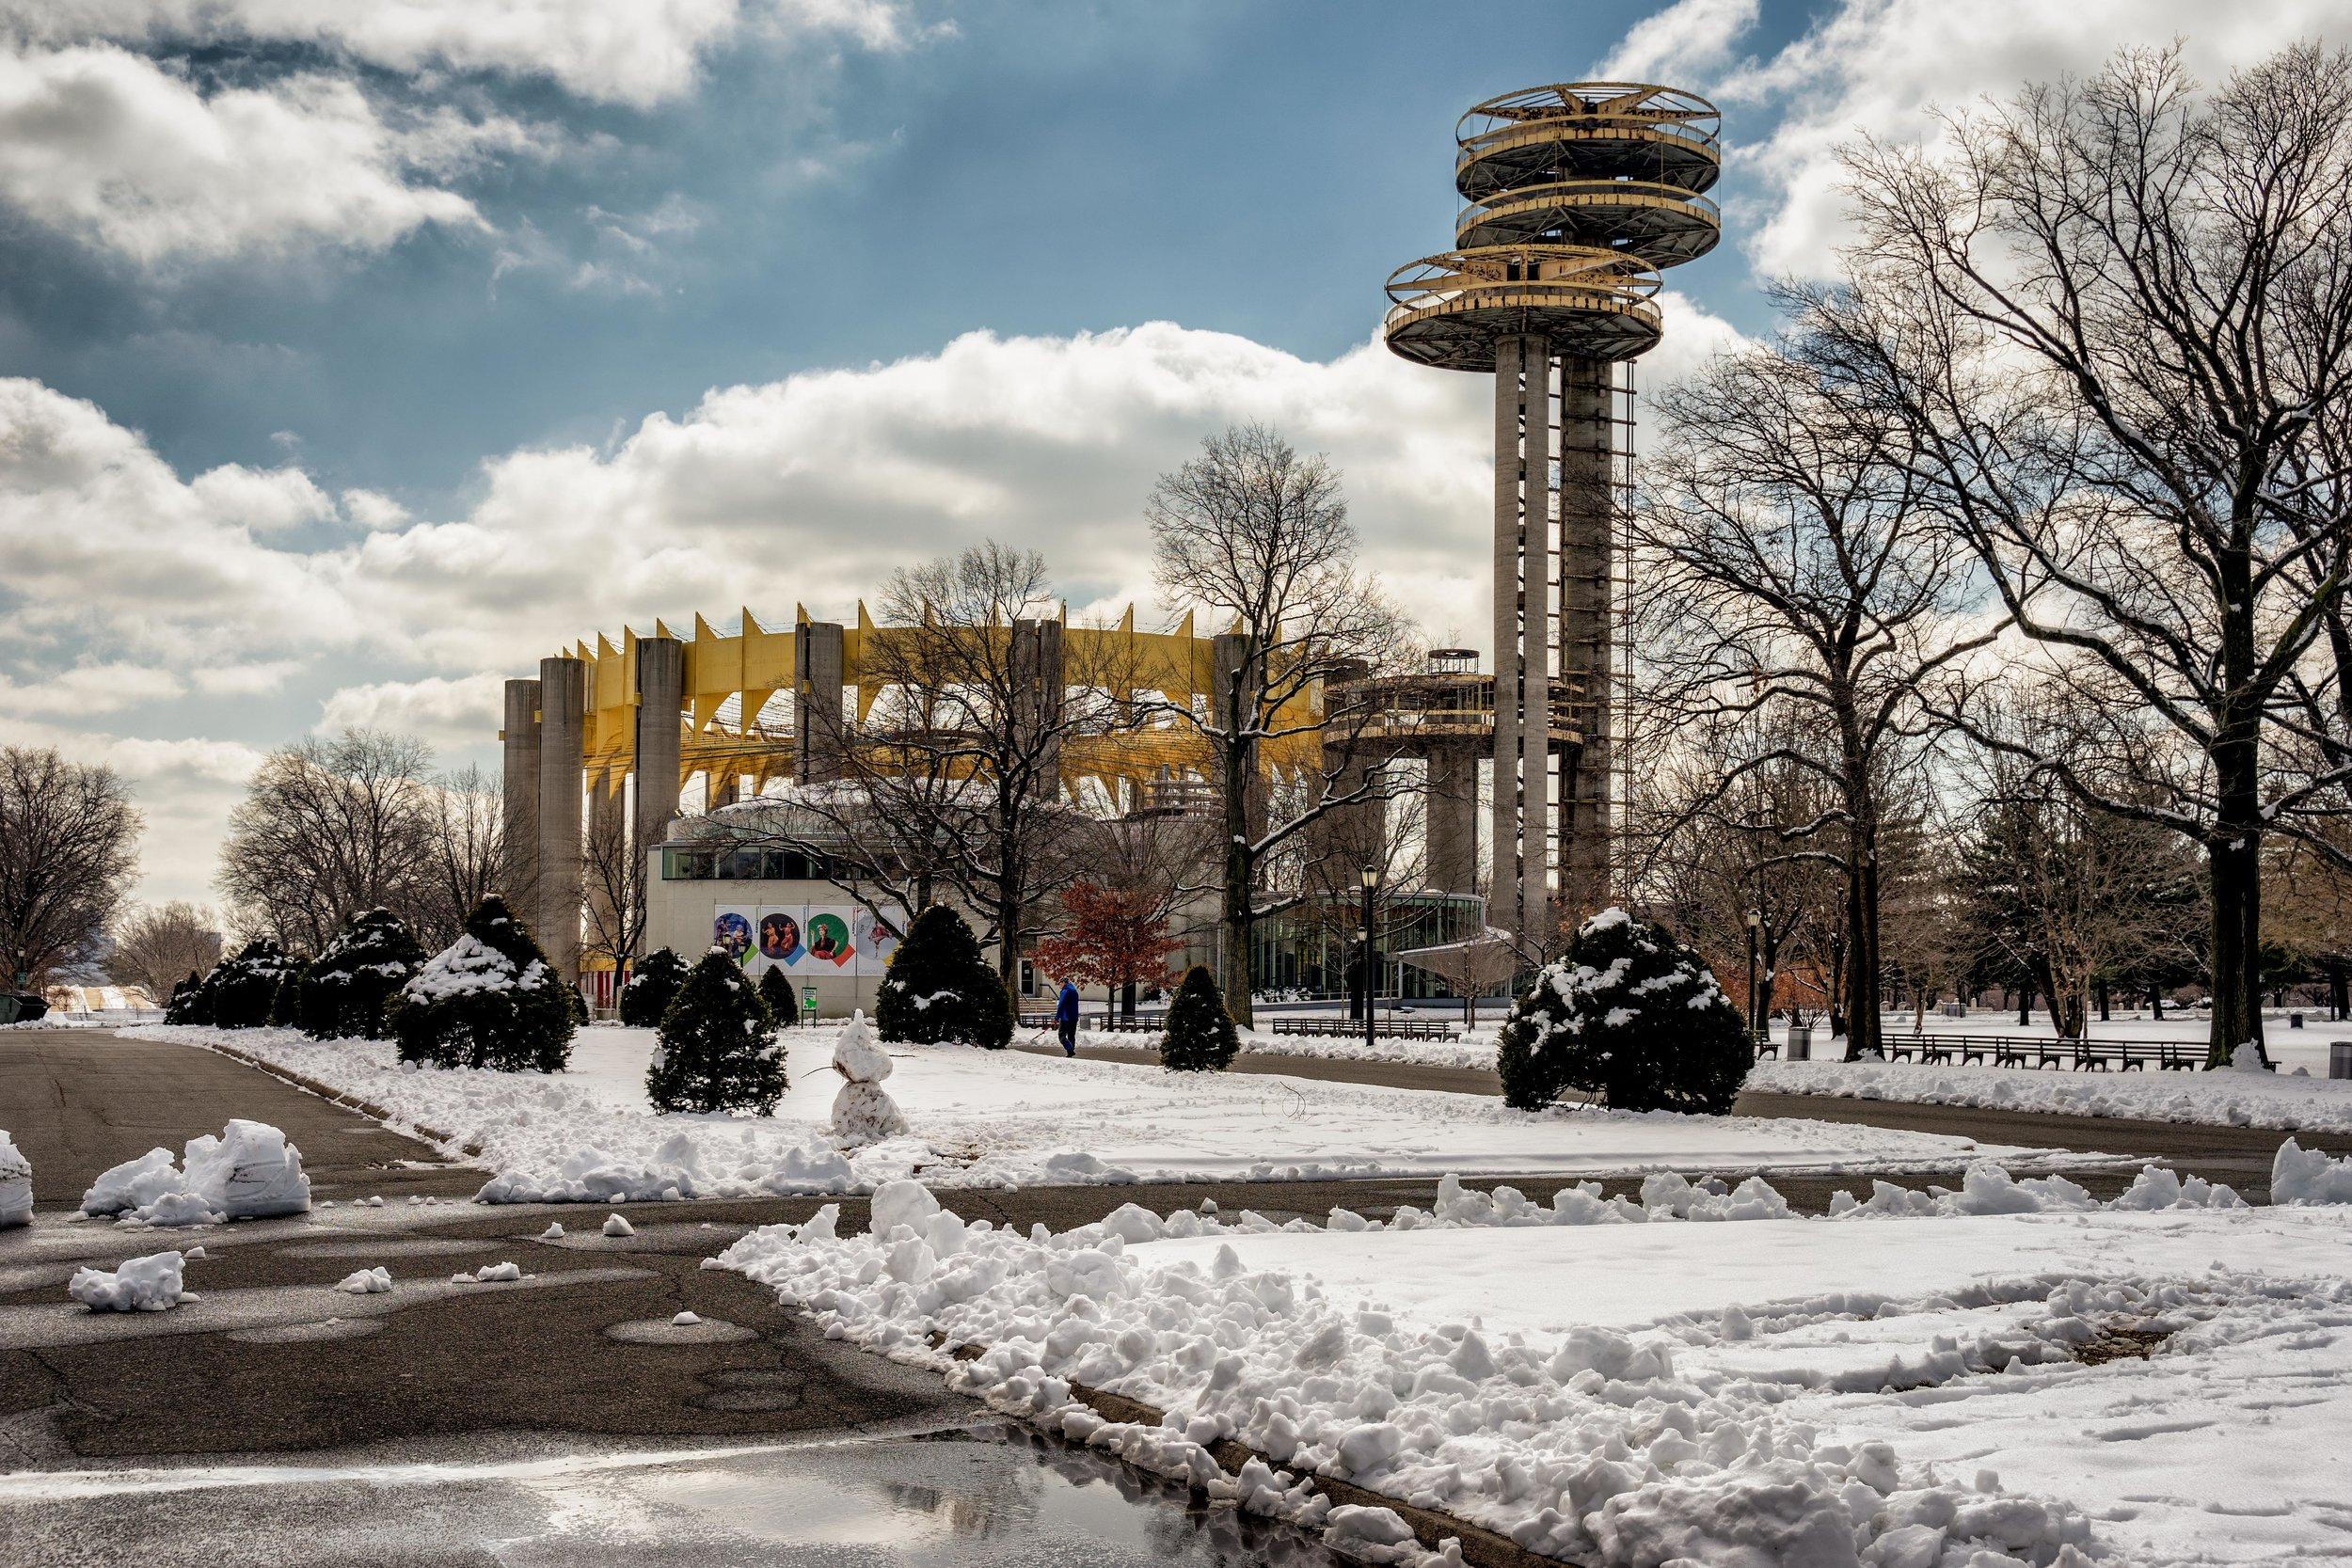 flushing meadows Observation towers